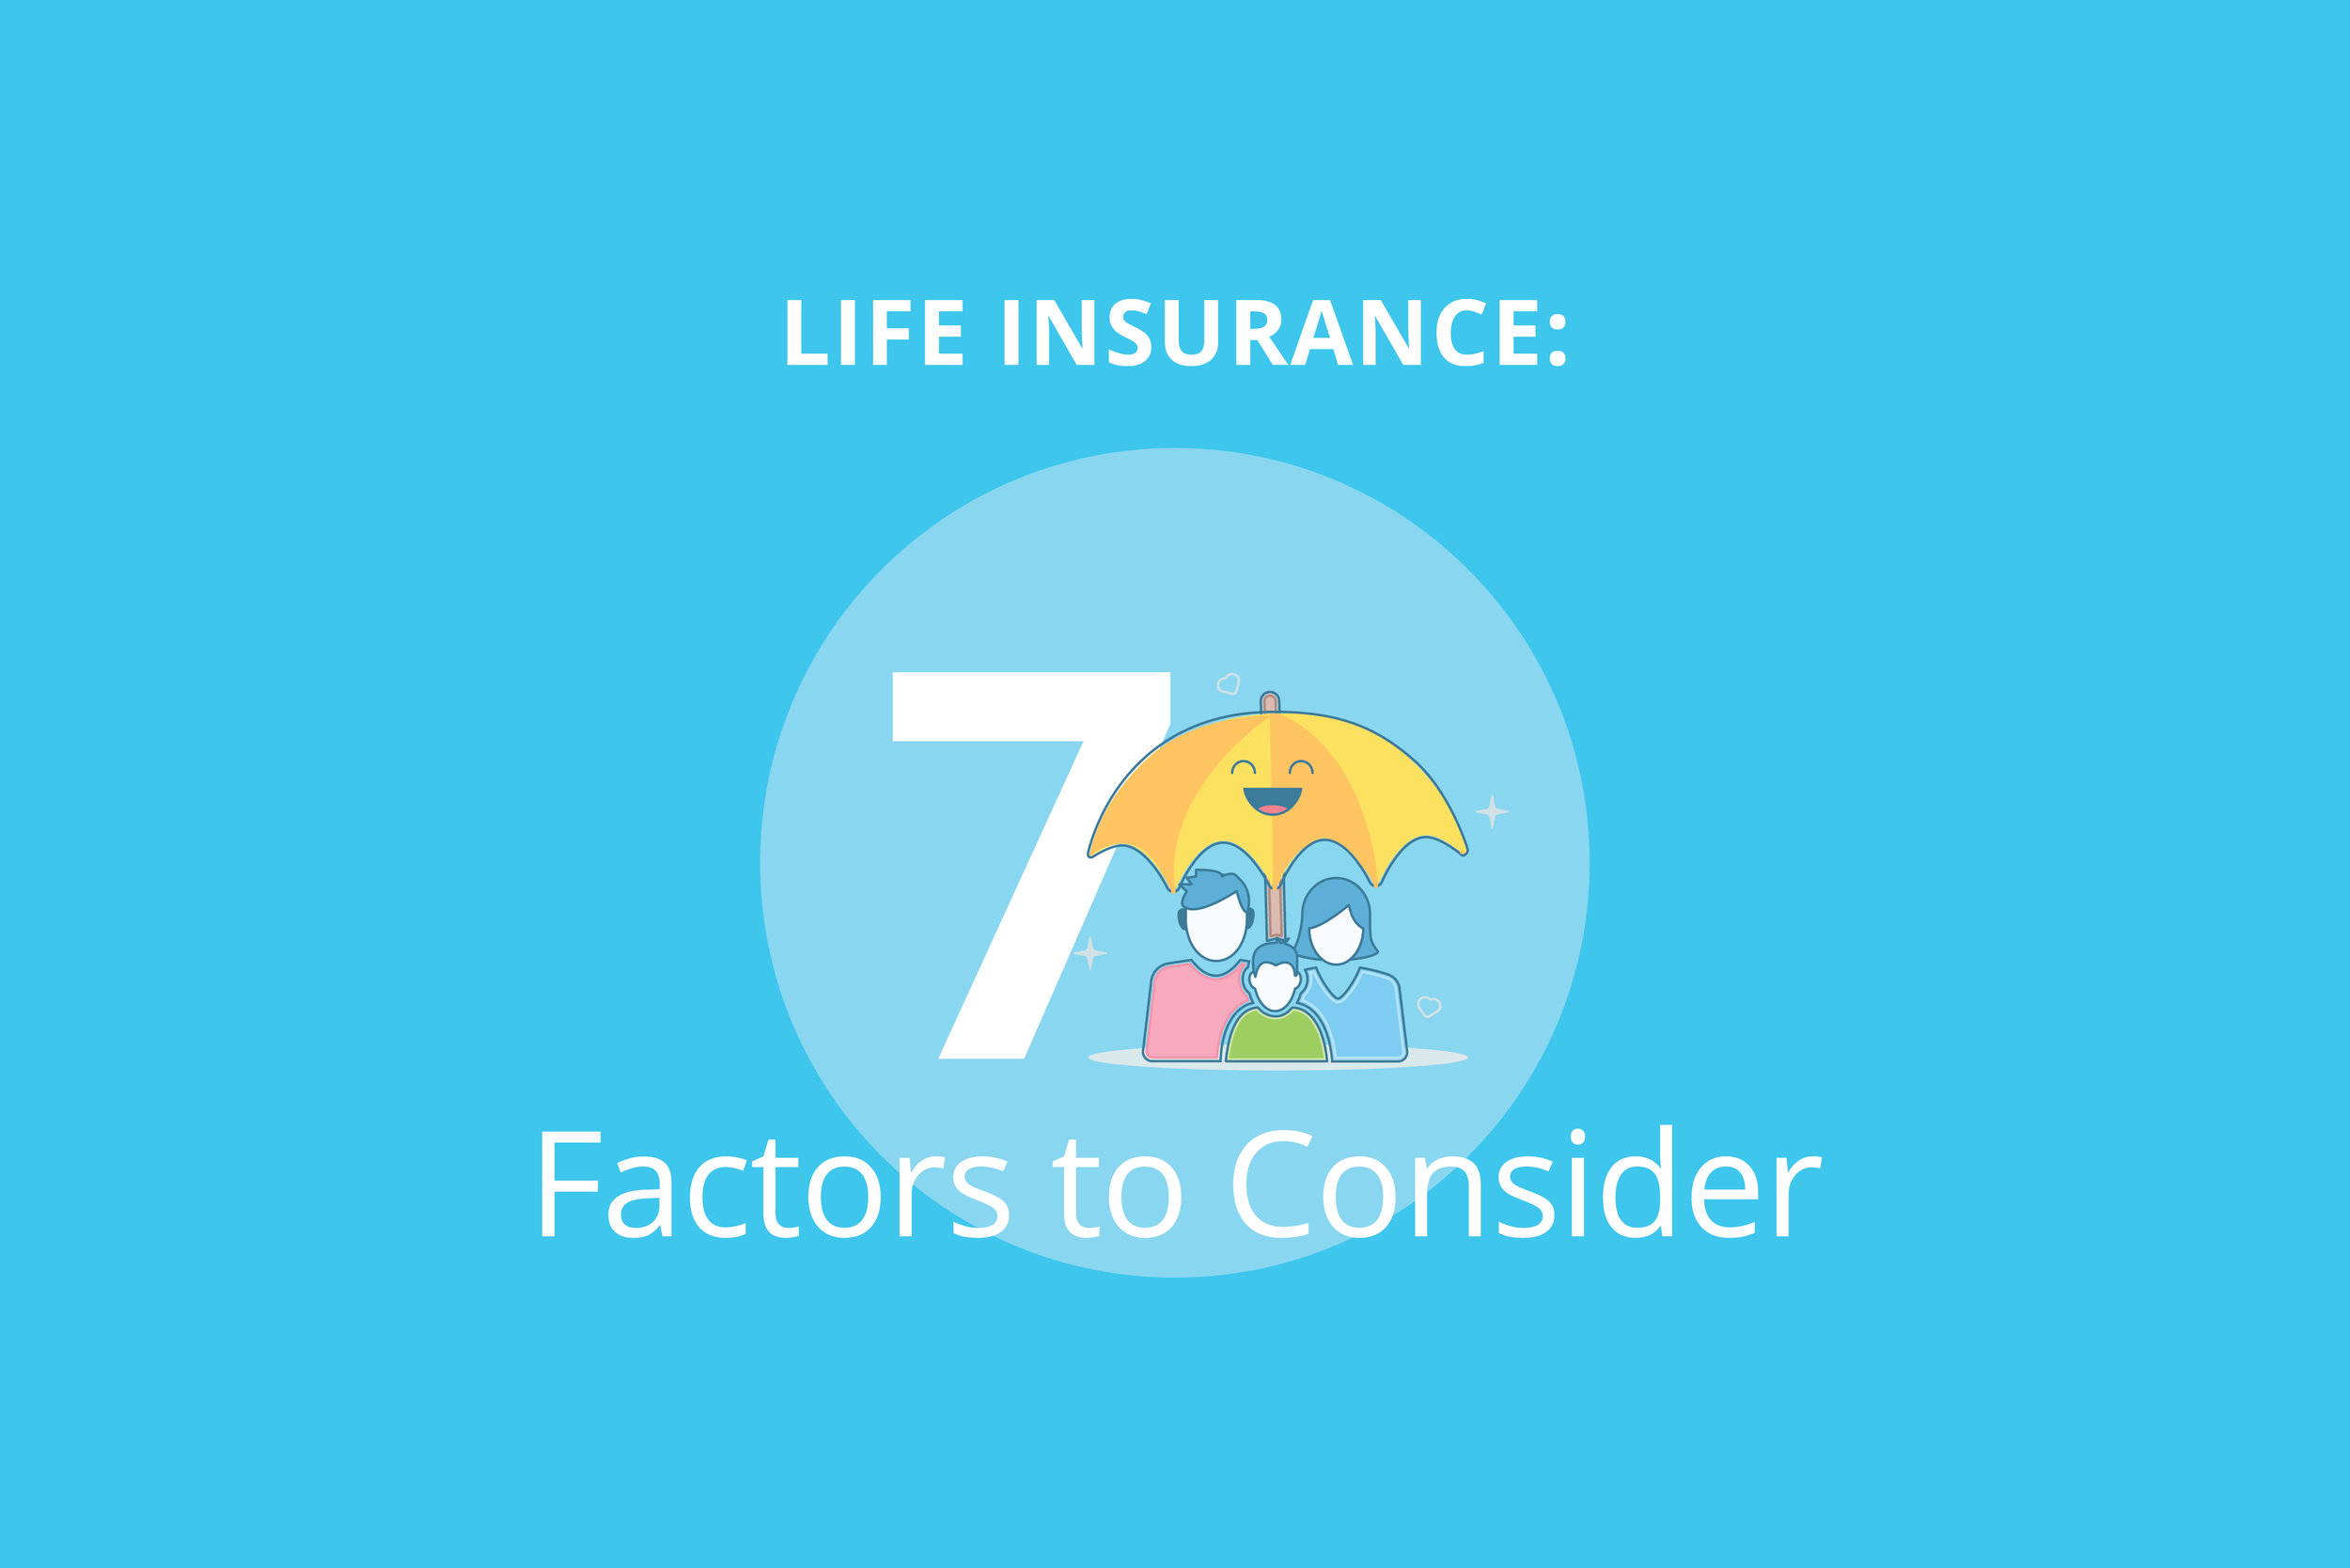 how much life insurance should i have?